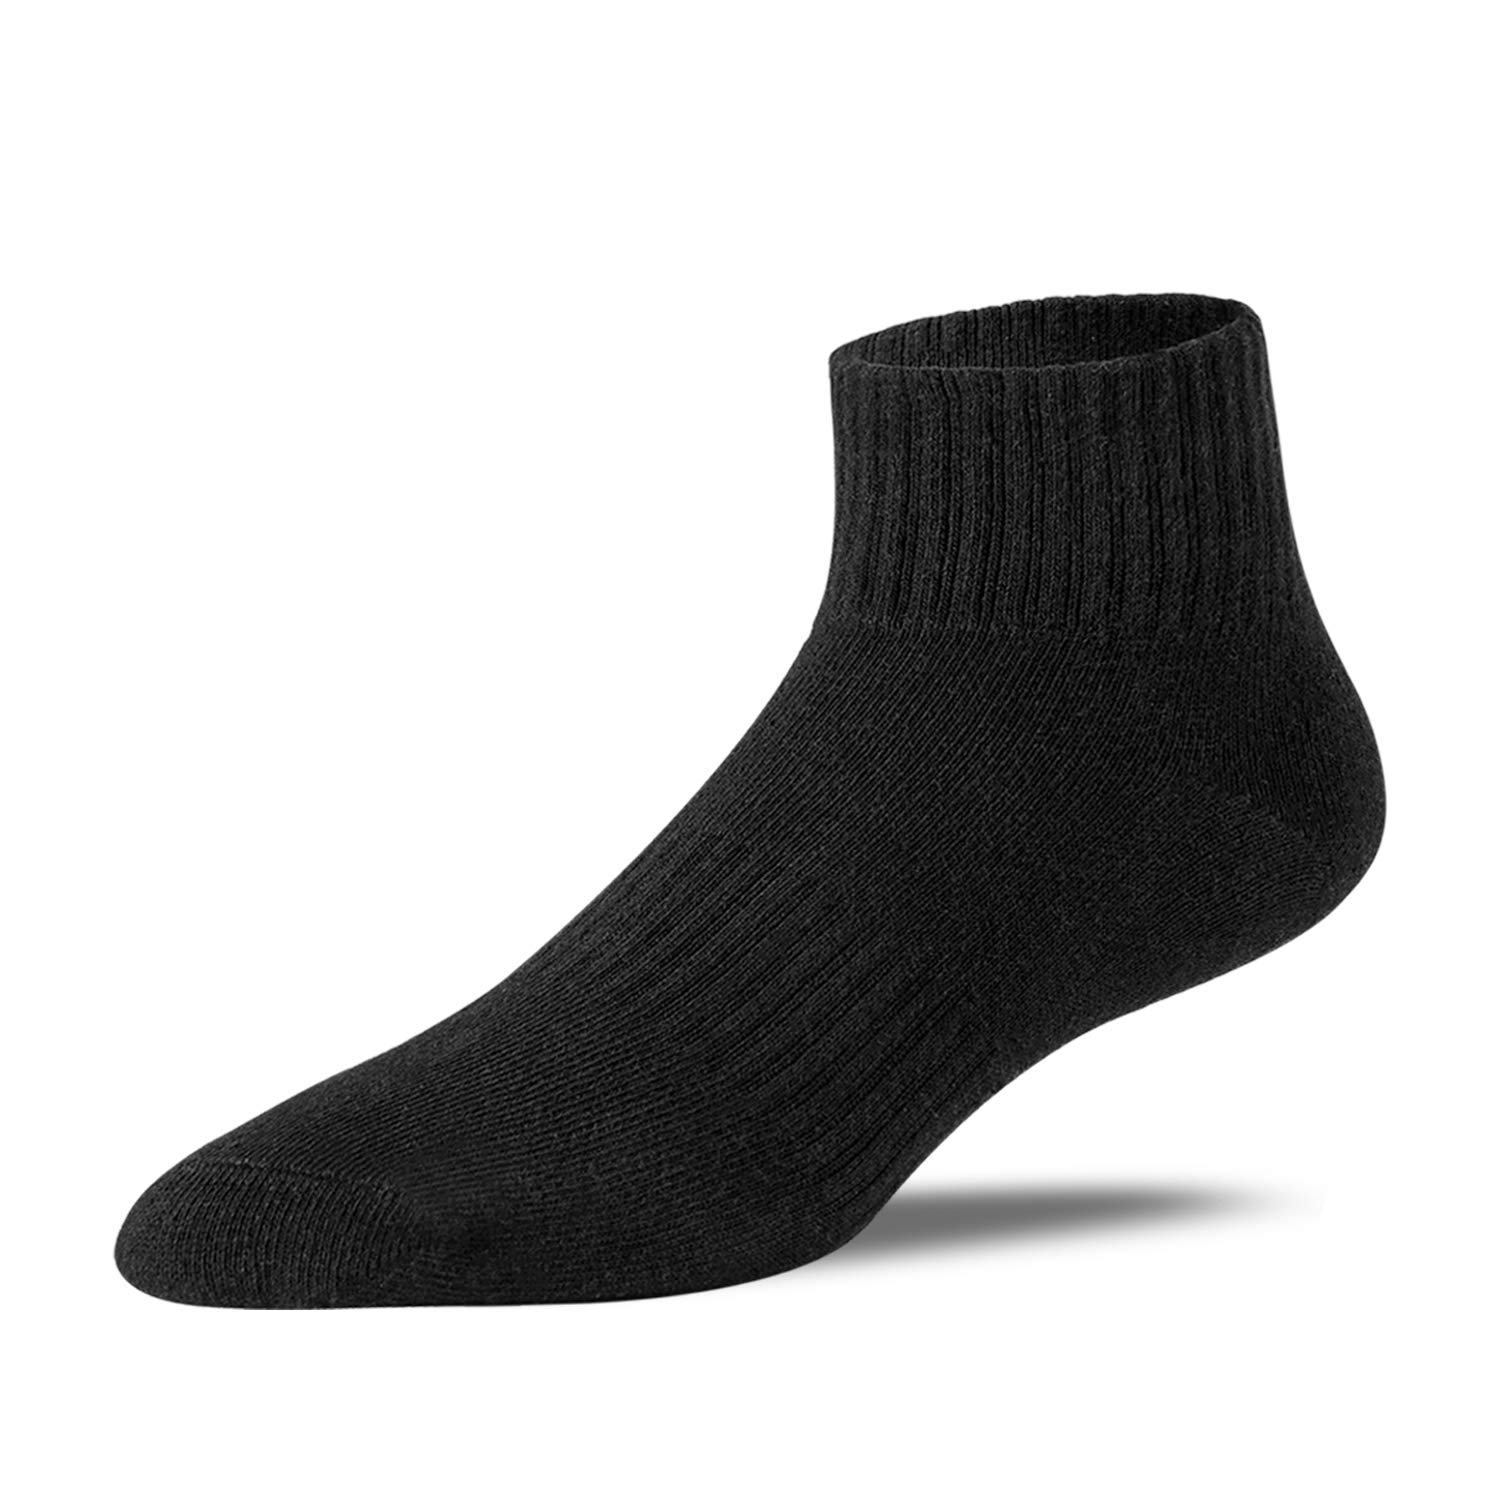 POSHDIVAH Cotton Ankle socks For Men Athletic Running Socks 6 Pack